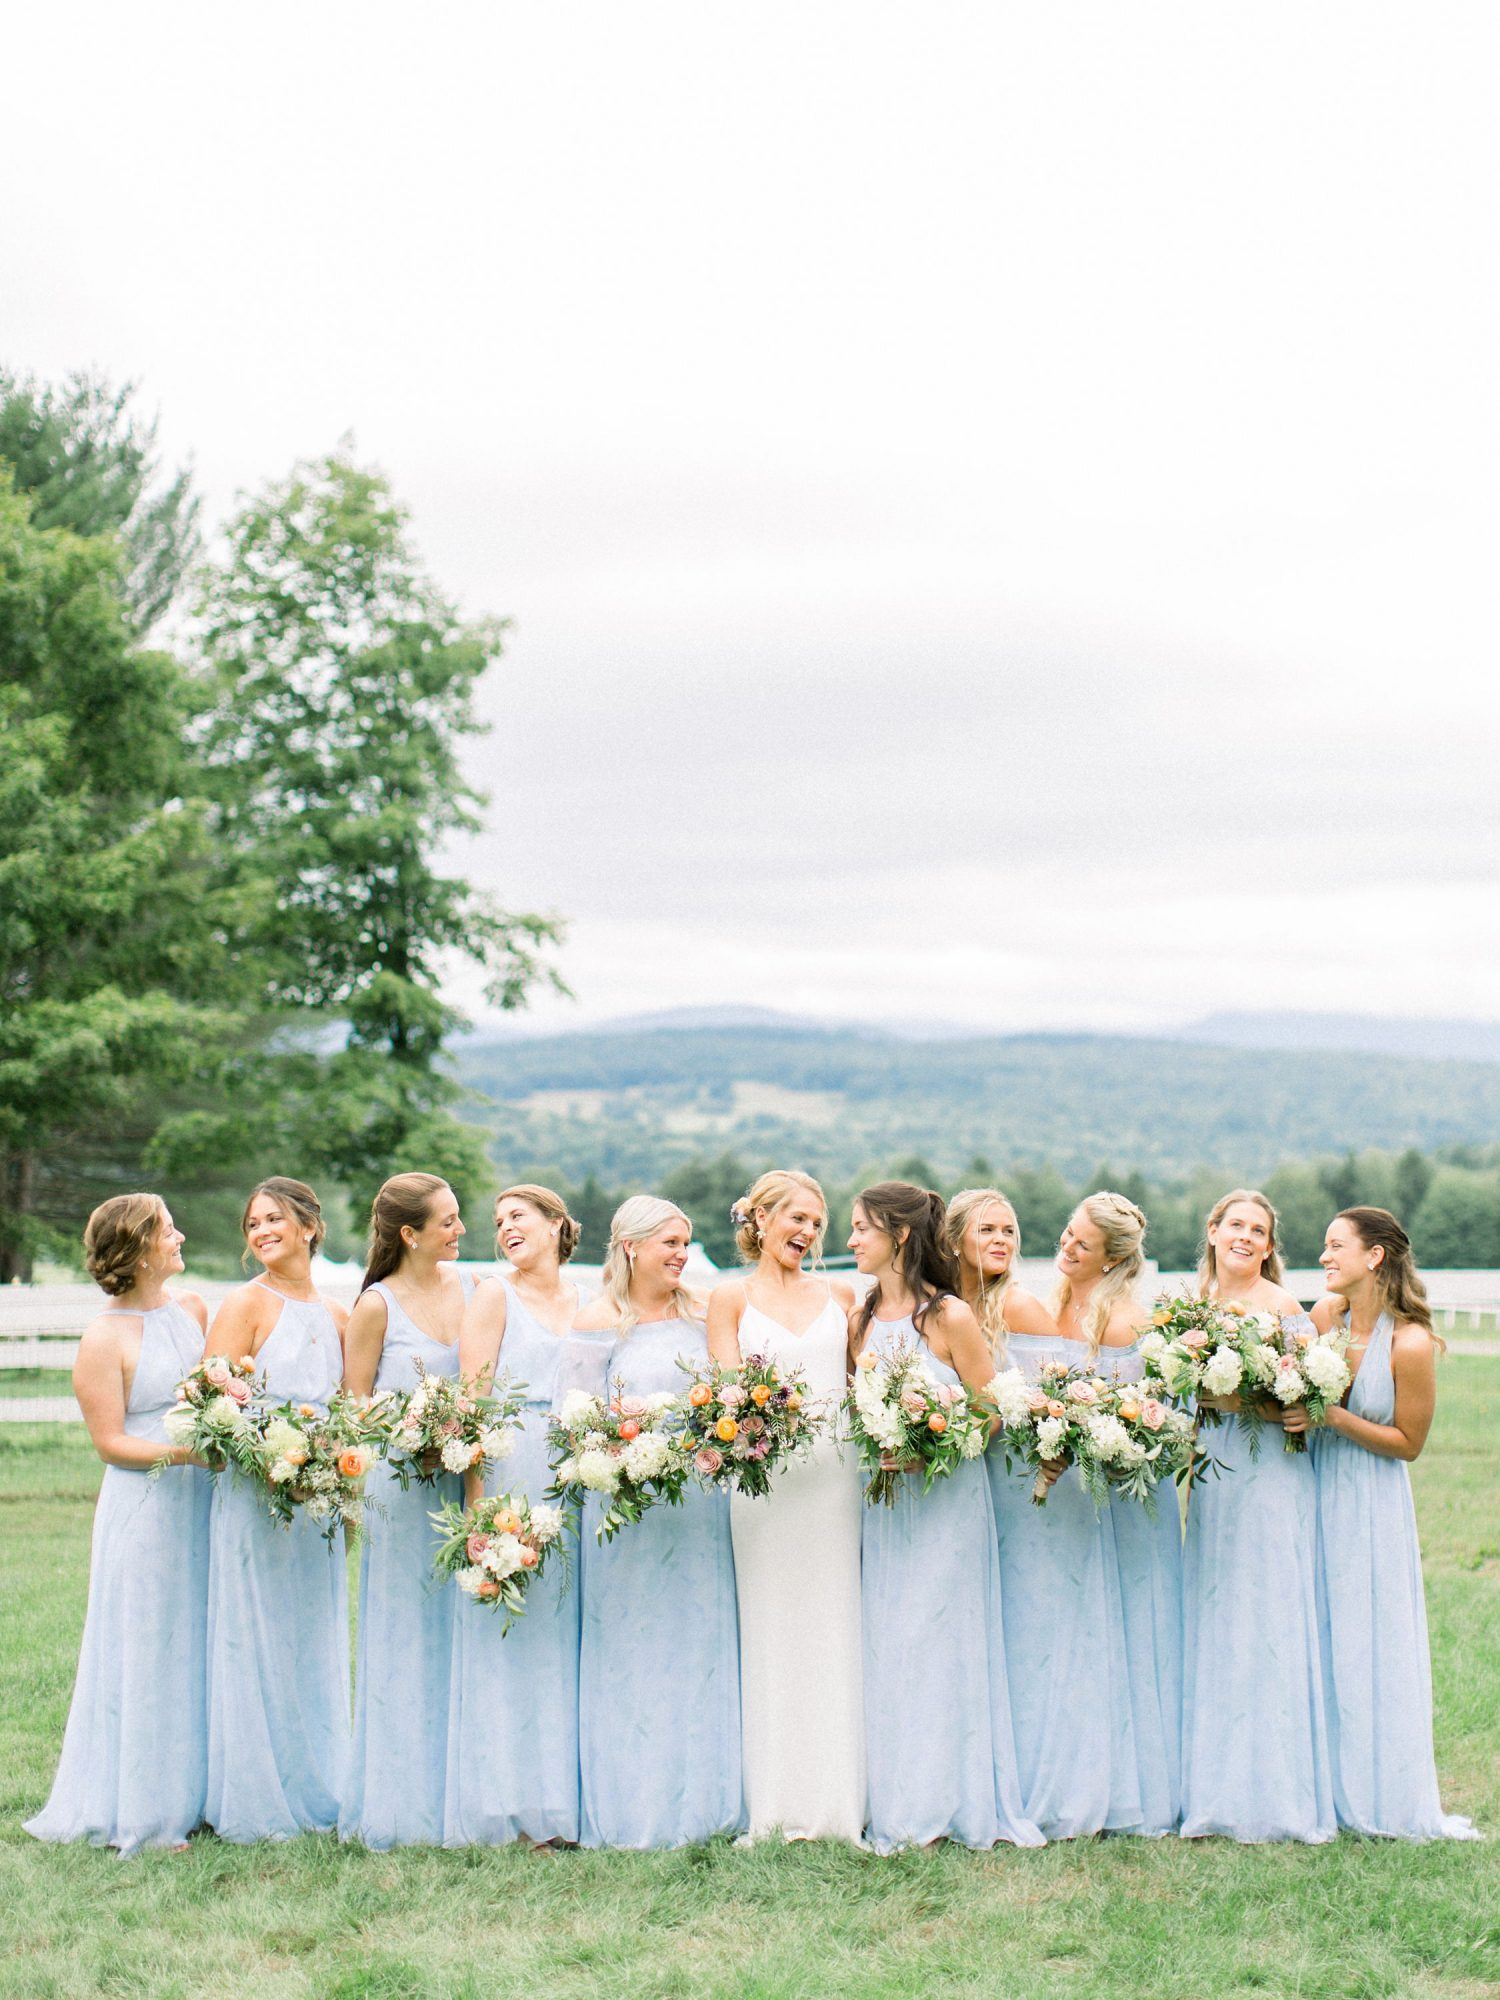 lauren josh wedding bridesmaids in blue dresses